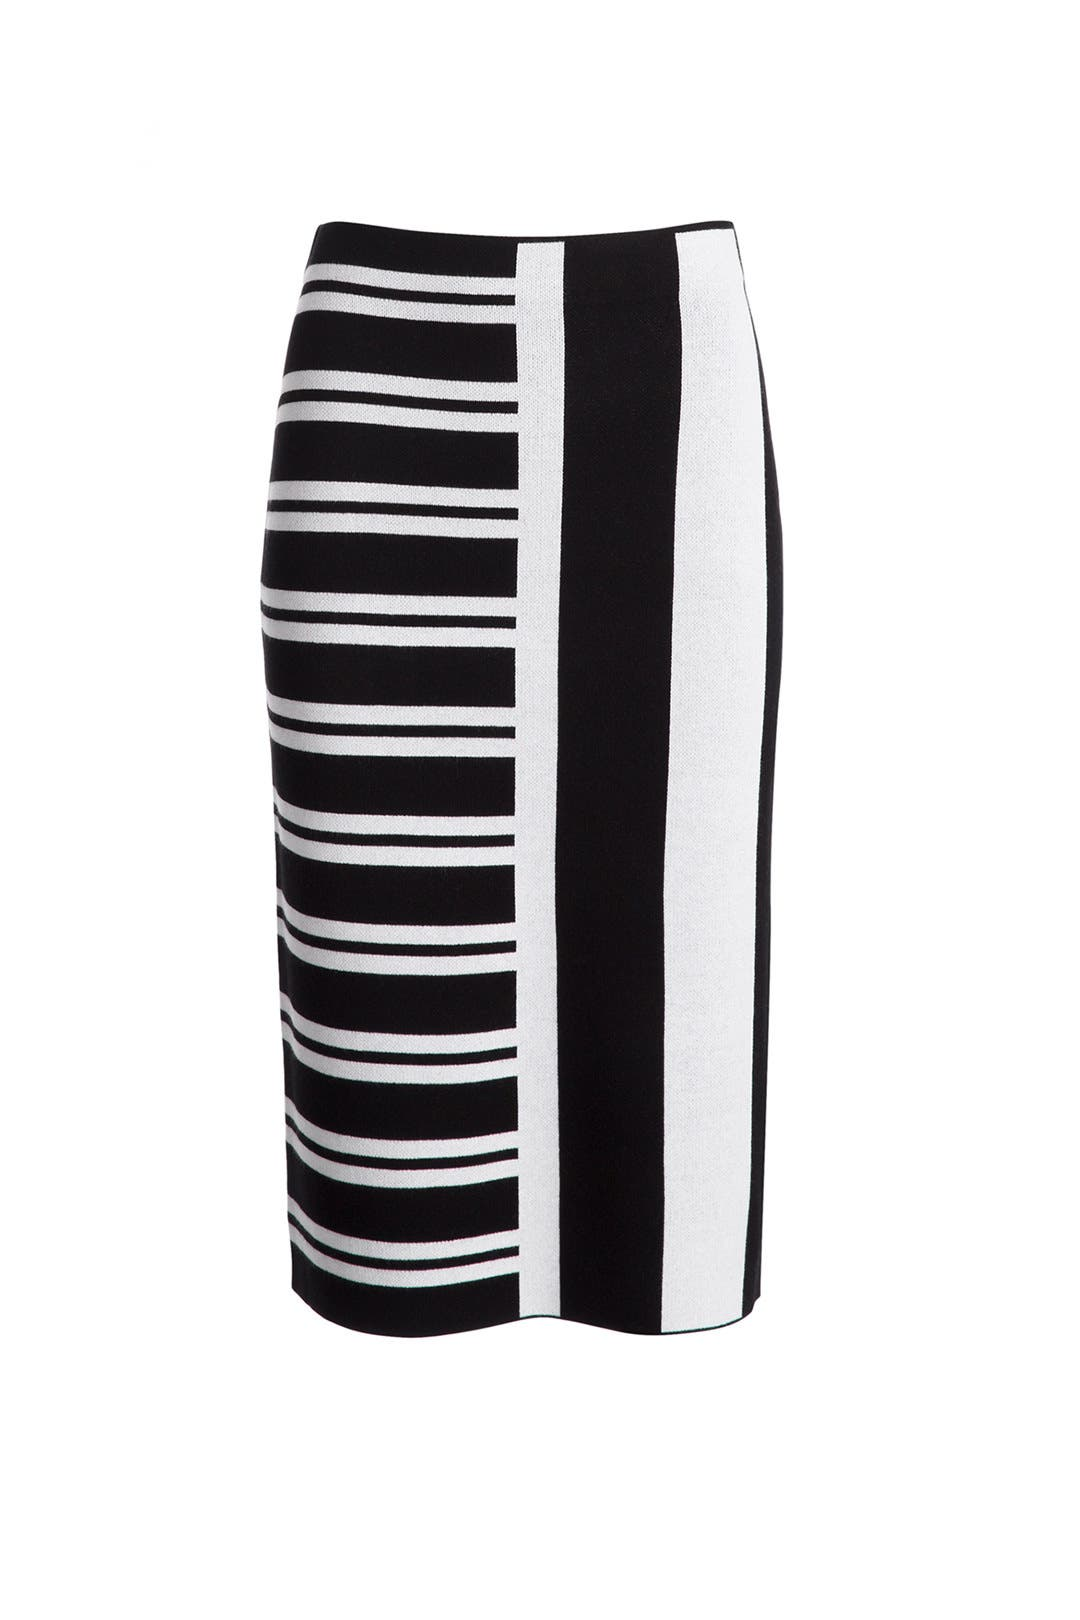 48ffbc438d Prosecco Efersten Skirt by Theory for $49   Rent the Runway